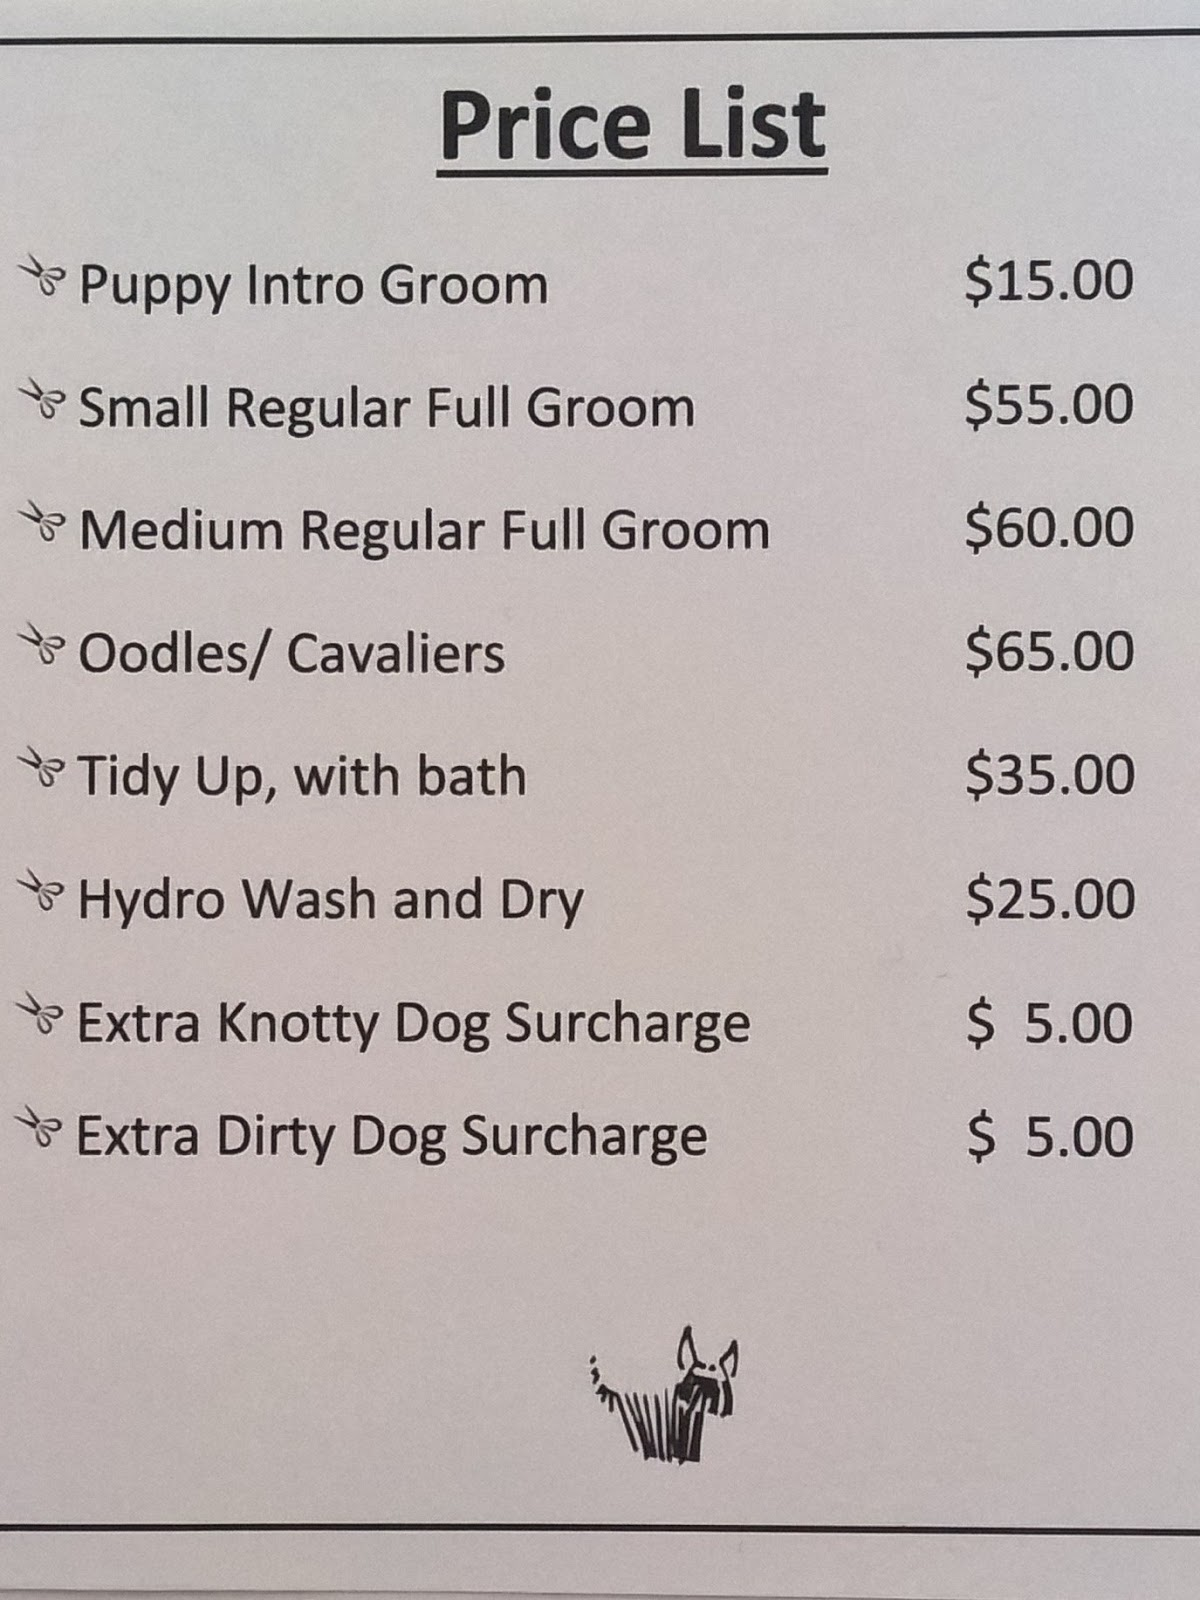 Smooth Dog Grooming Price List